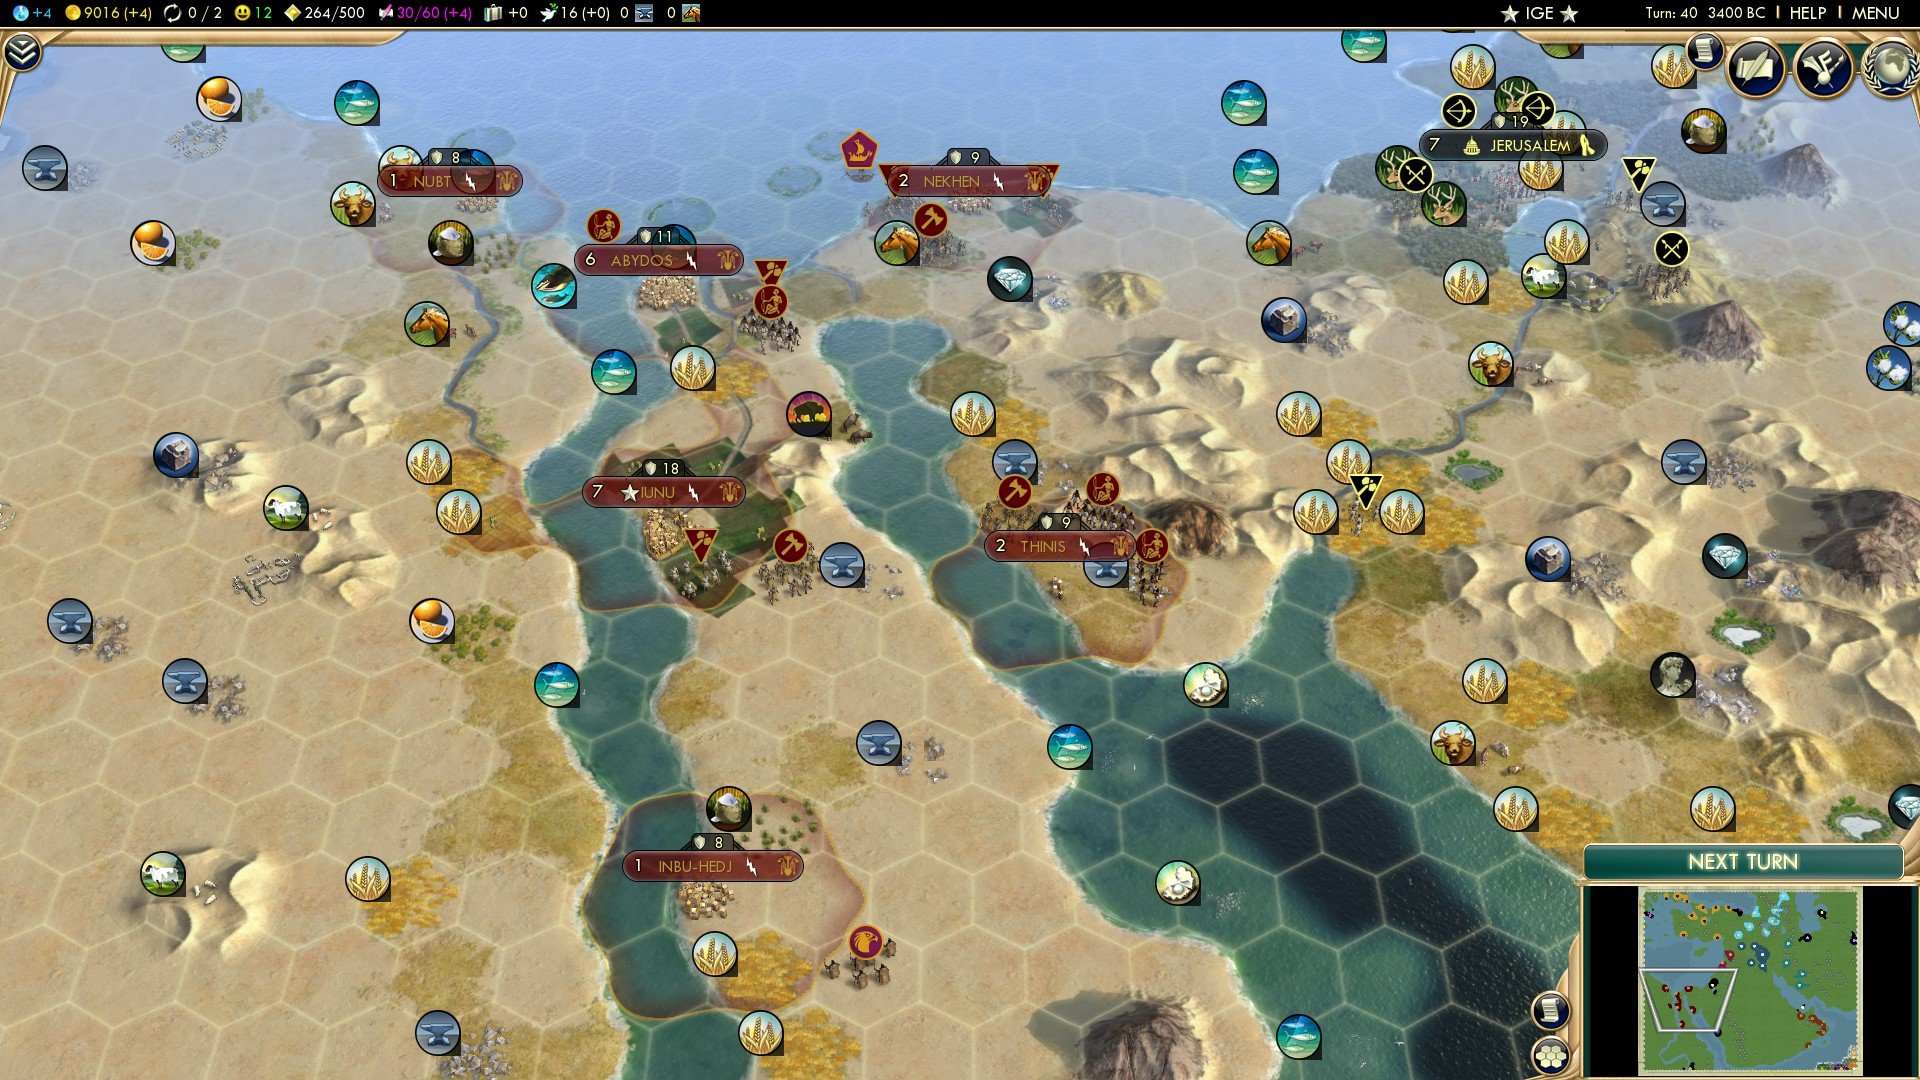 Civ hybrid game mki part two zealous growth after action report 7 off to the nile we see the roman province of aegyptus doing very nicely with the new settlements of nubt and inbu hedj aegyptus will surely grow gumiabroncs Gallery